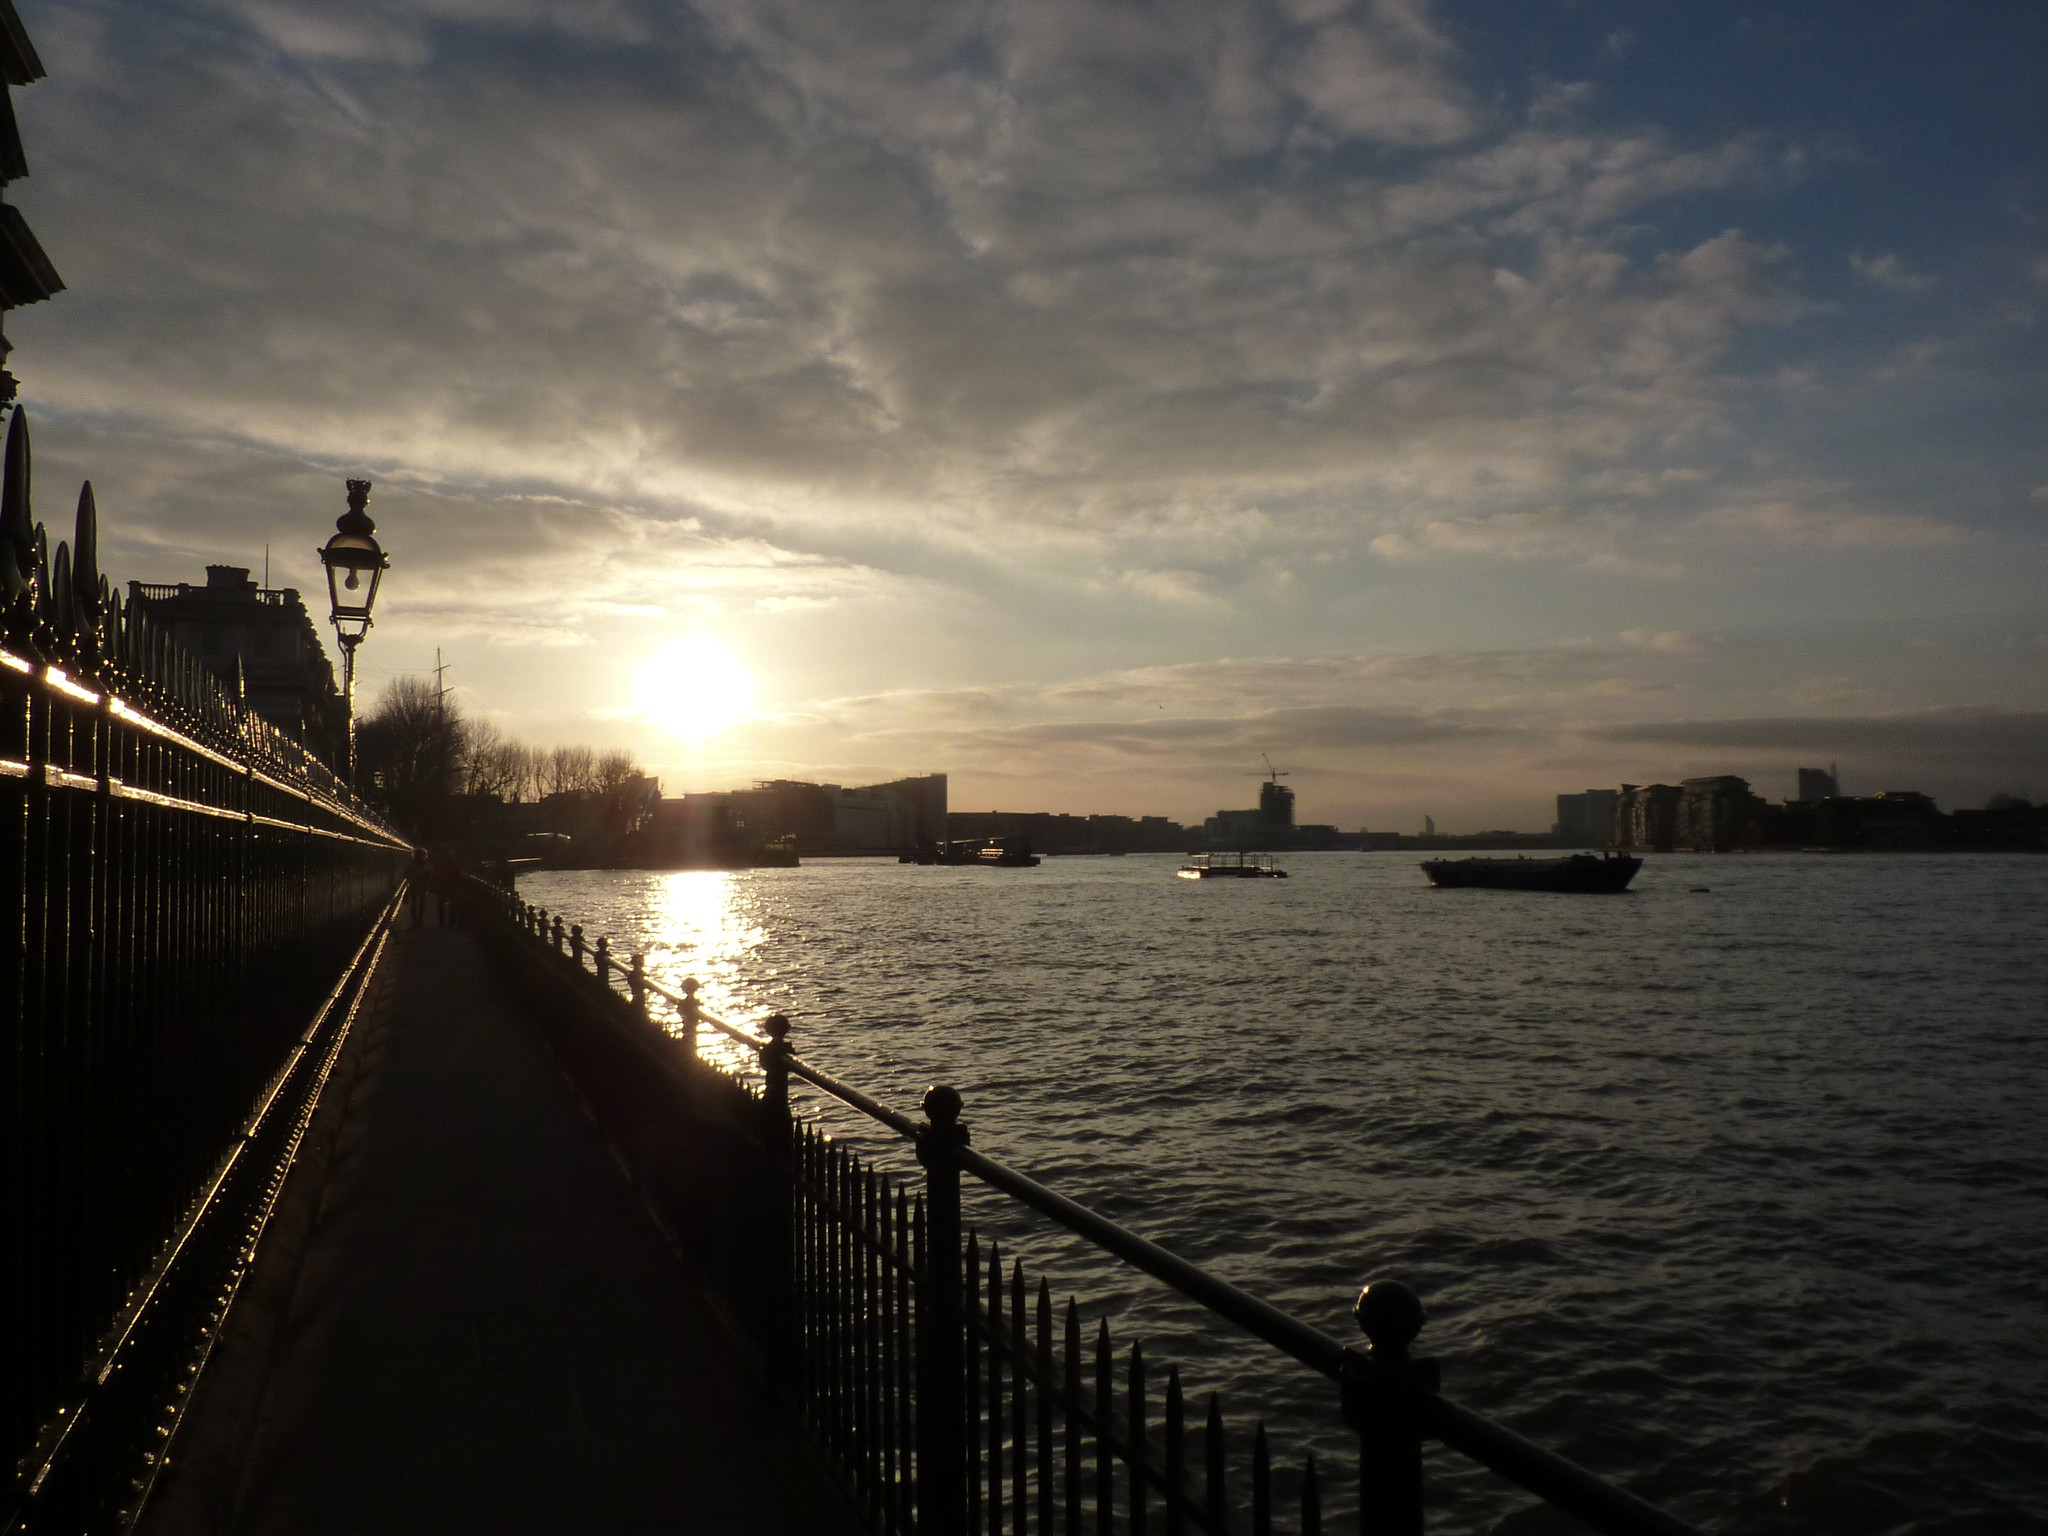 Setting sun over the River Thames in Greenwich